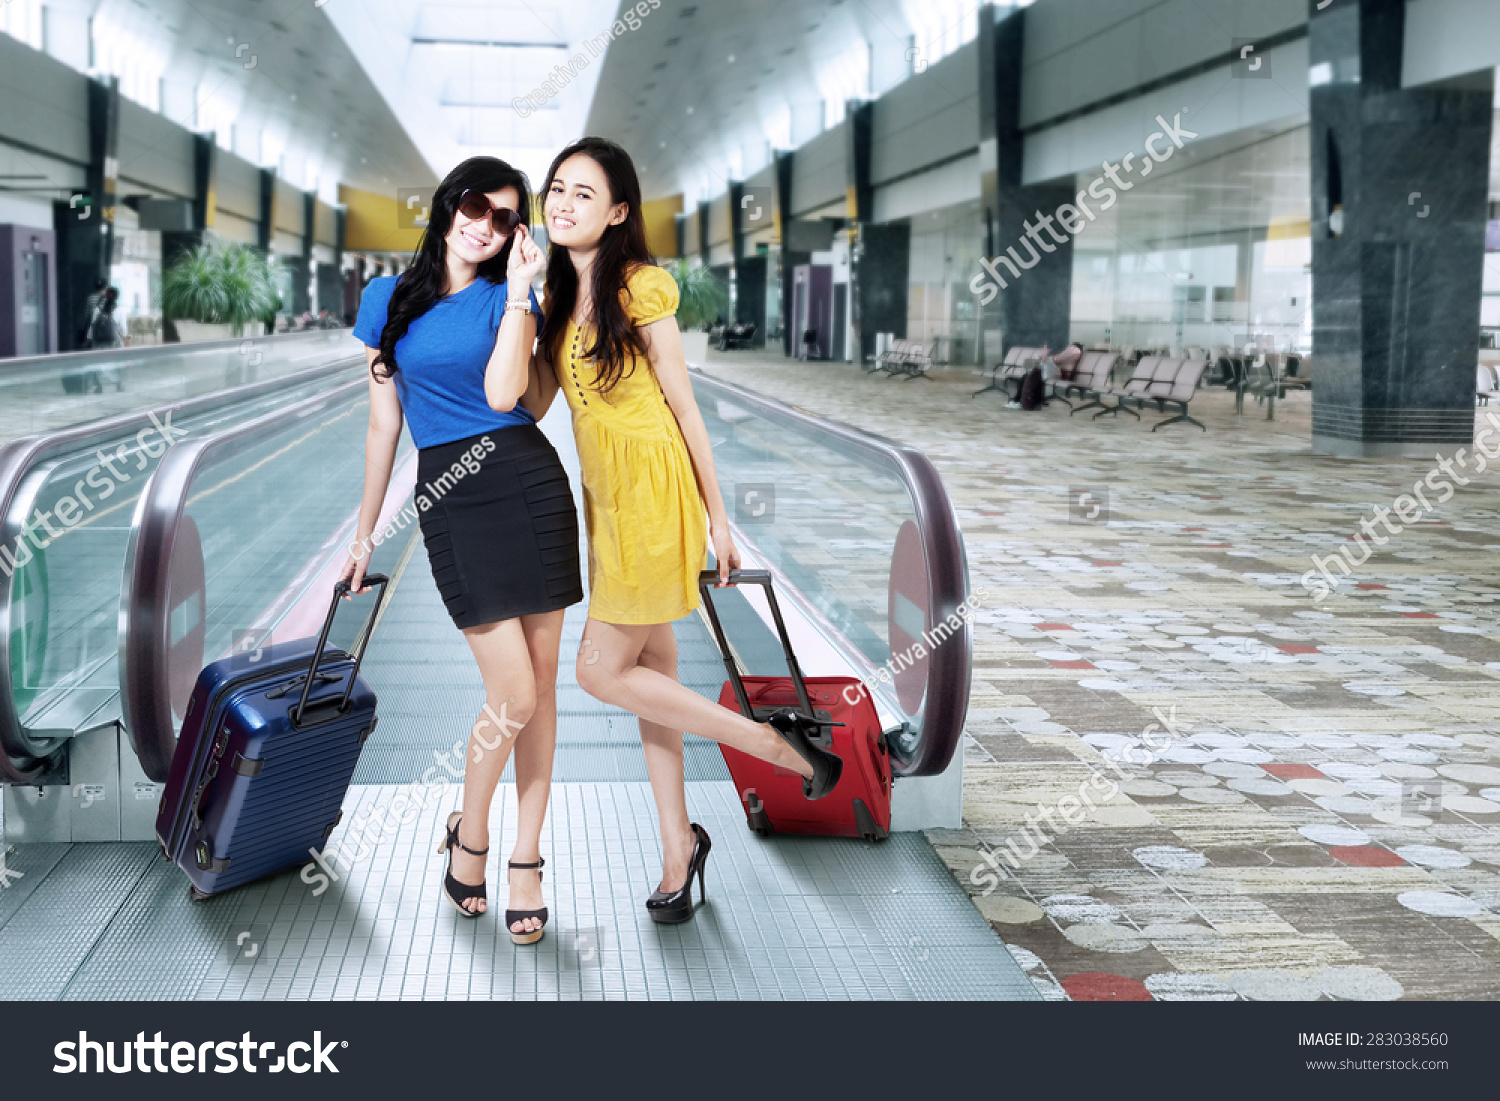 Portrait of two pretty girls traveling together and posing in the airport  hall 4da459eb7876d